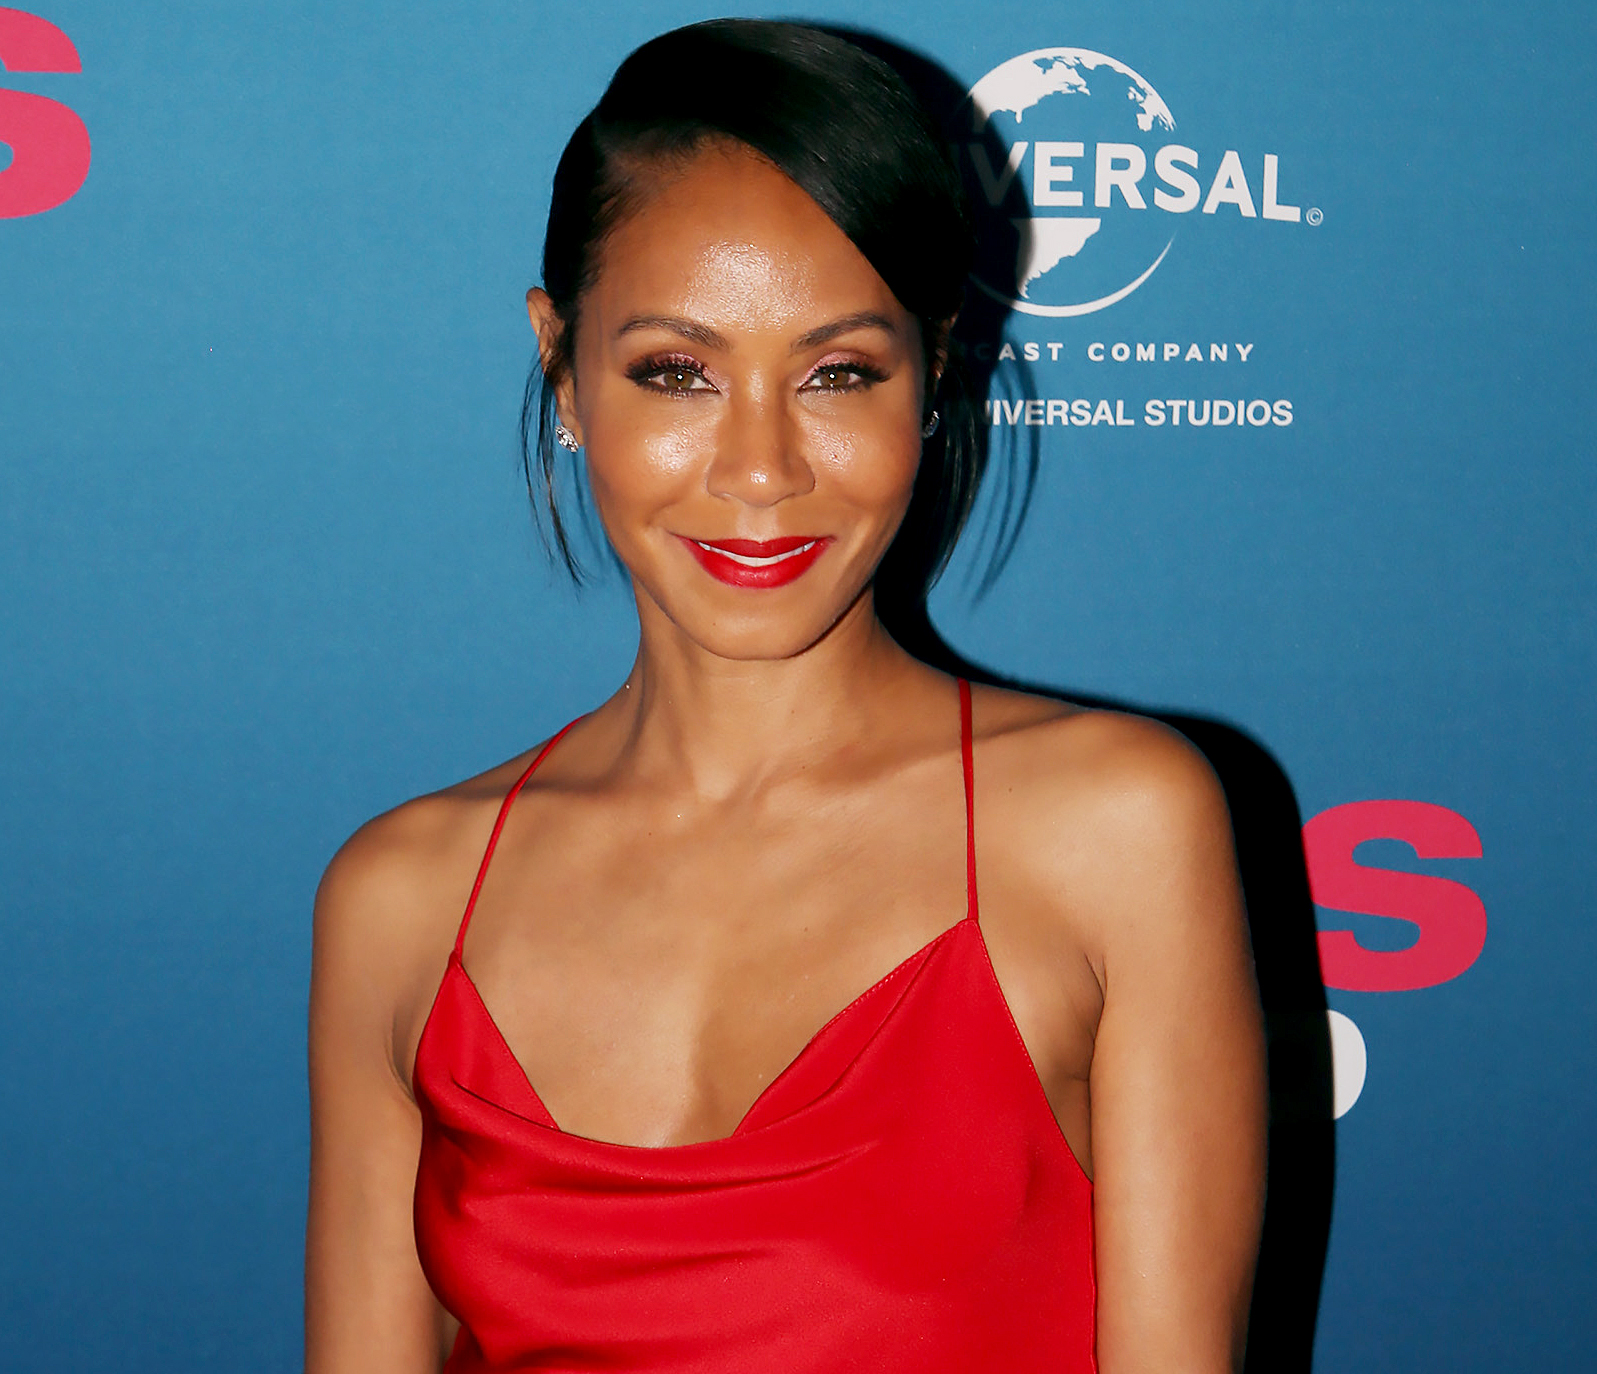 Jada Pinkett Smith Reveals Past Battle With Sex Addiction